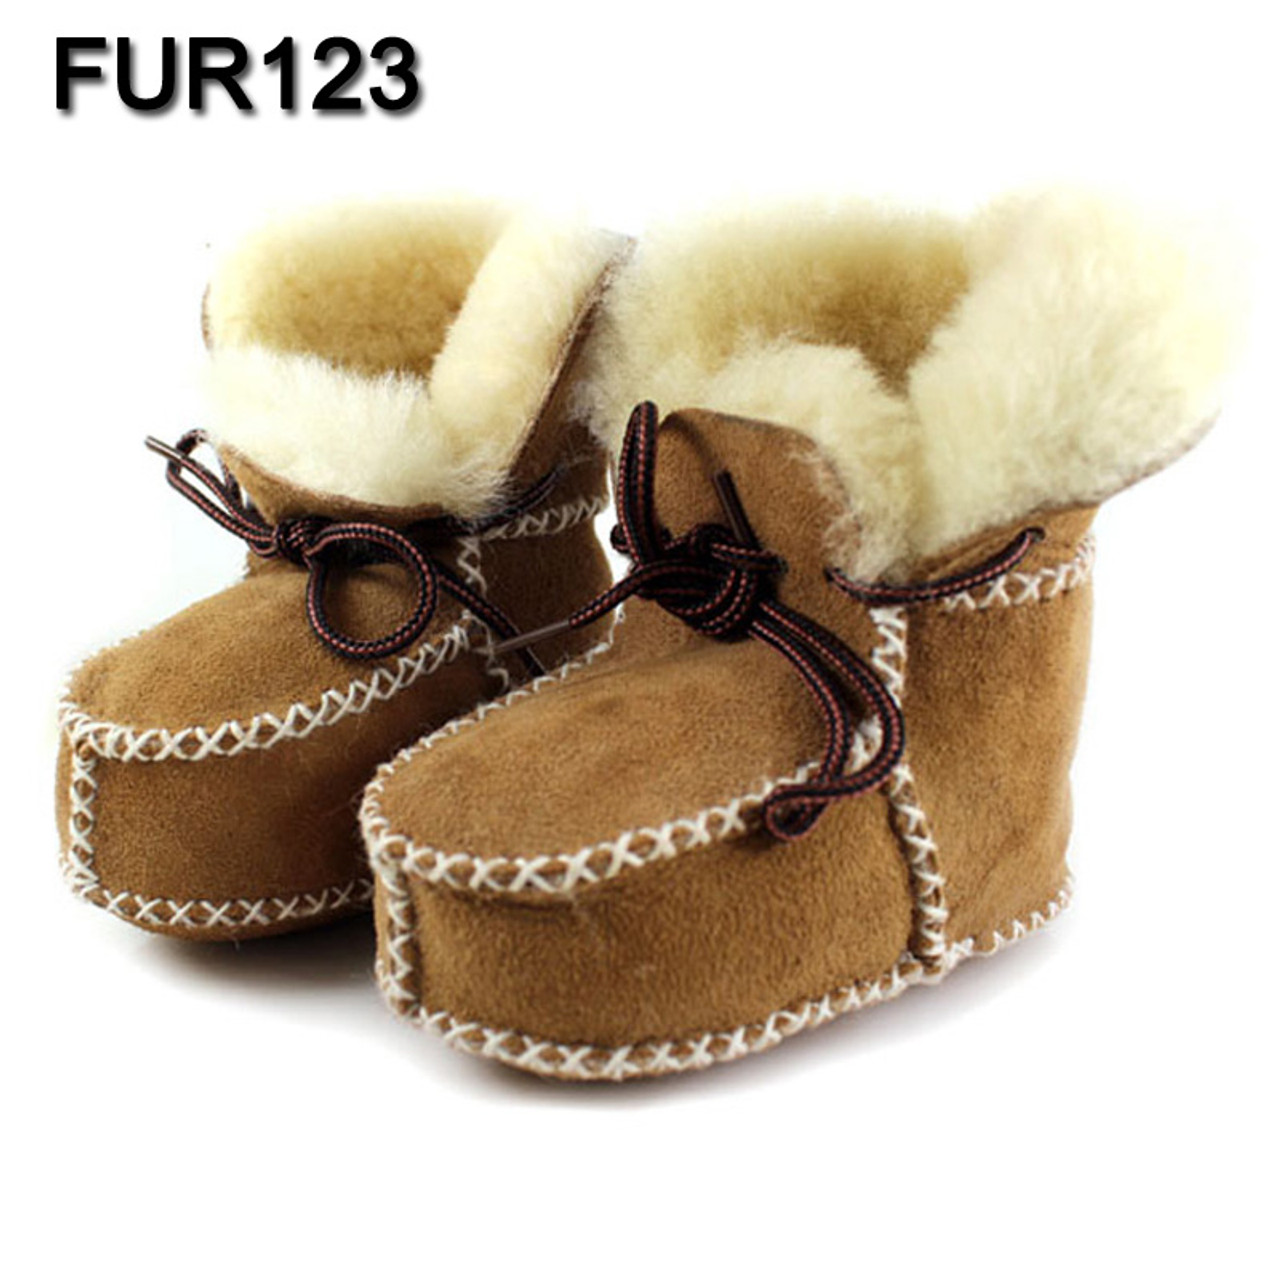 3eac1a62581e3 FUR123 Winter Baby Shoes Boots Infants Warm Shoes Fur Wool Girls Baby  Booties Sheepskin Genuine Leather Boy Baby Boots